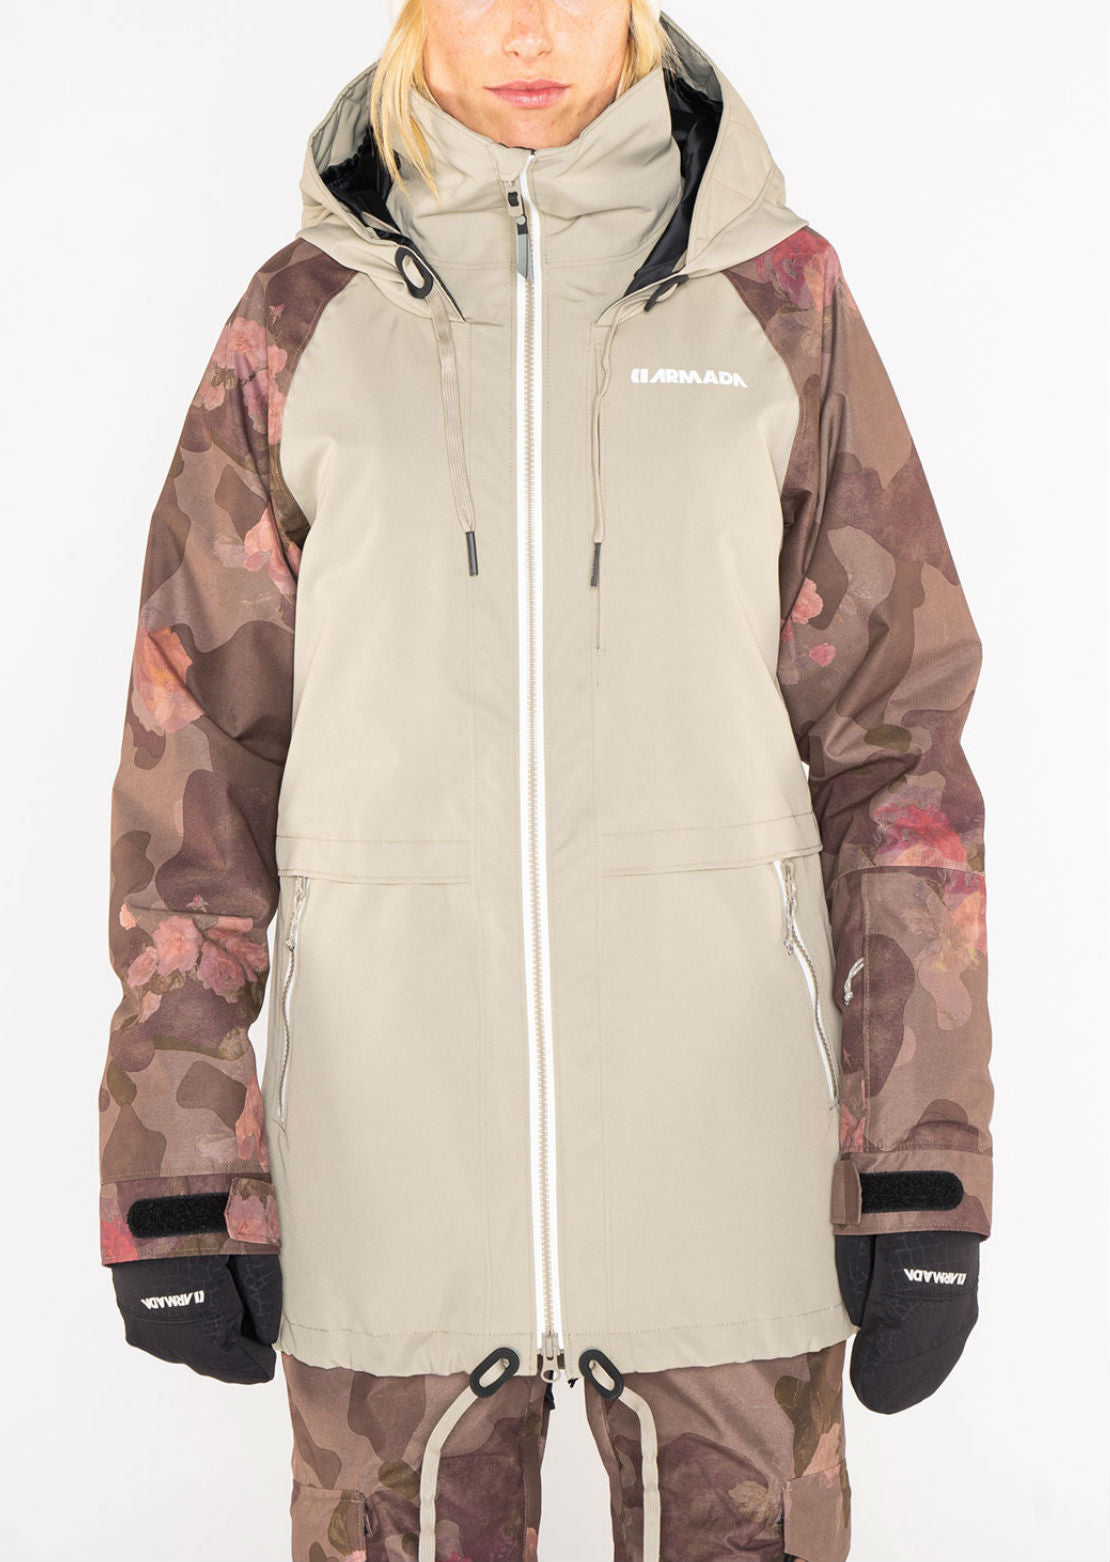 Armada Women's Gypsum Jacket